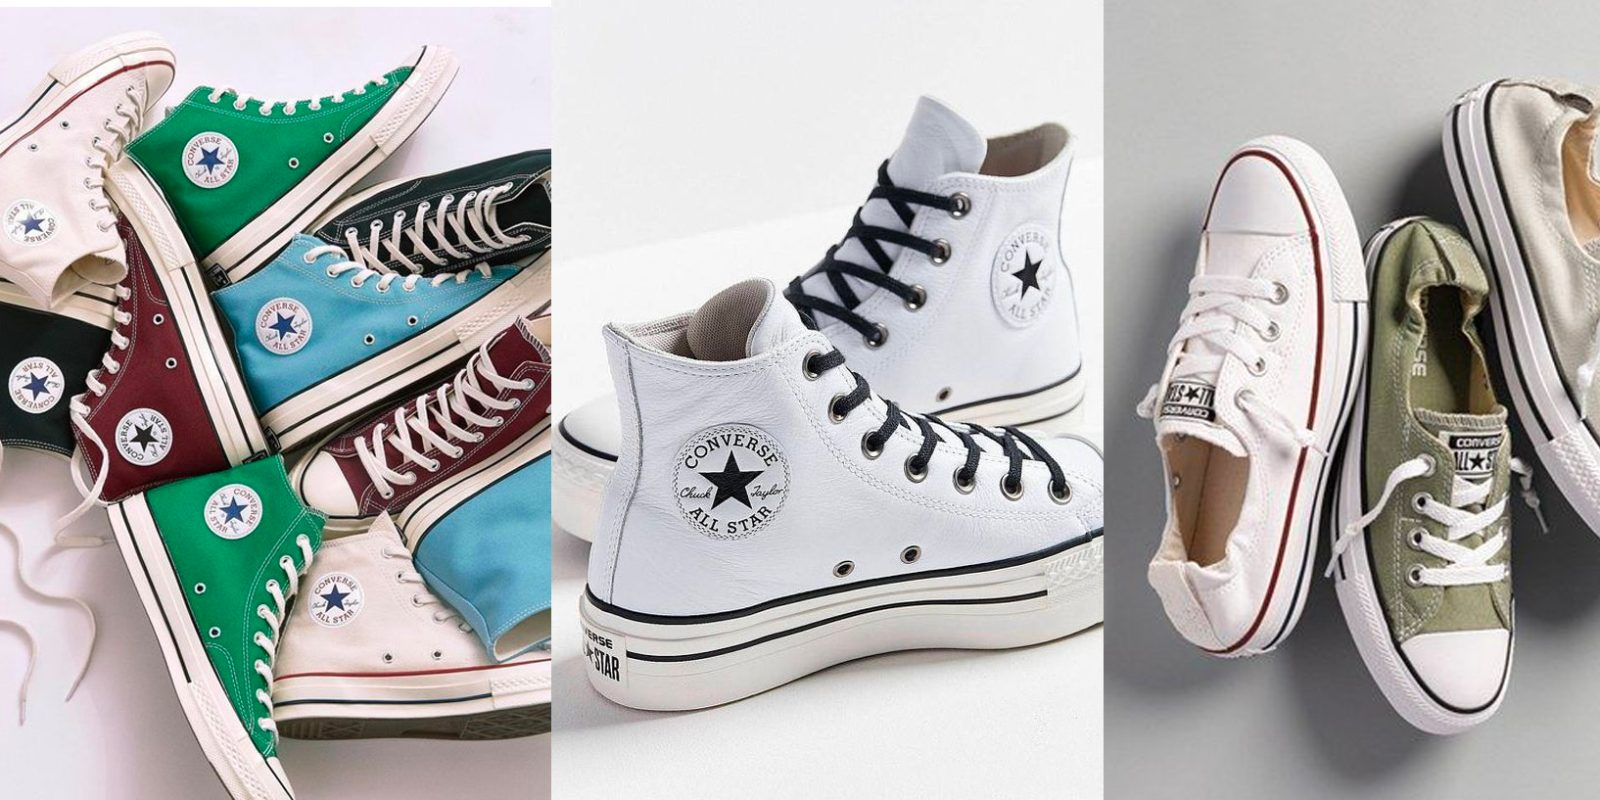 bbbf47976b5b Converse cuts an extra 30% off sale items from  21 with sneakers ...